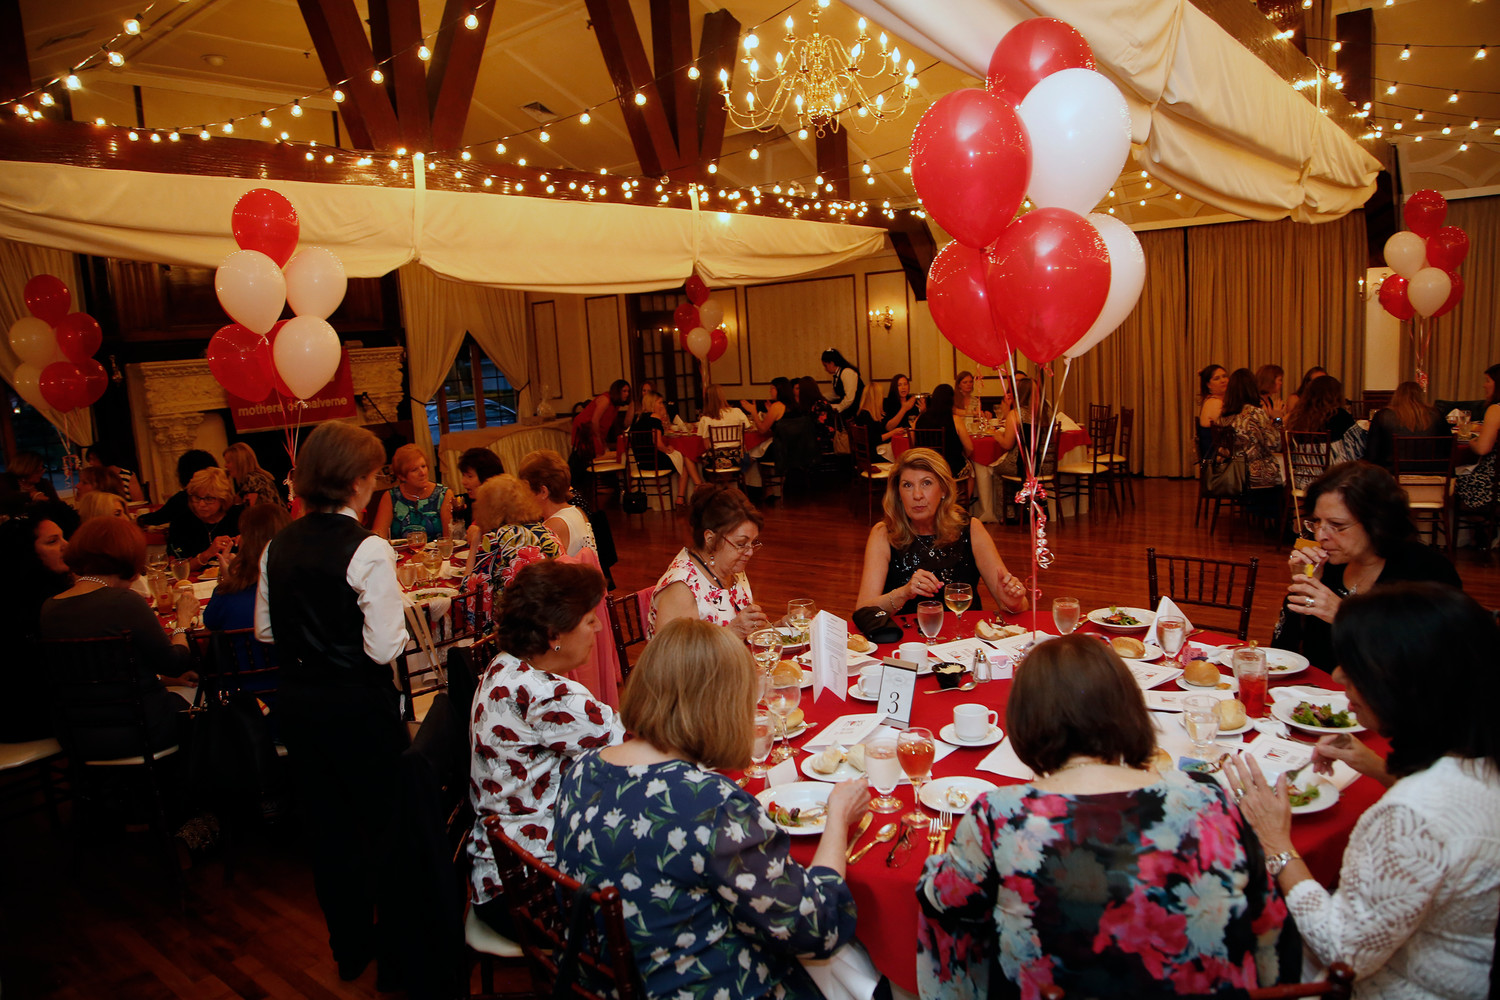 Members of the Moms of Malverne celebrated their 40th anniversary at the Stewart Manor Country Club on May 3.